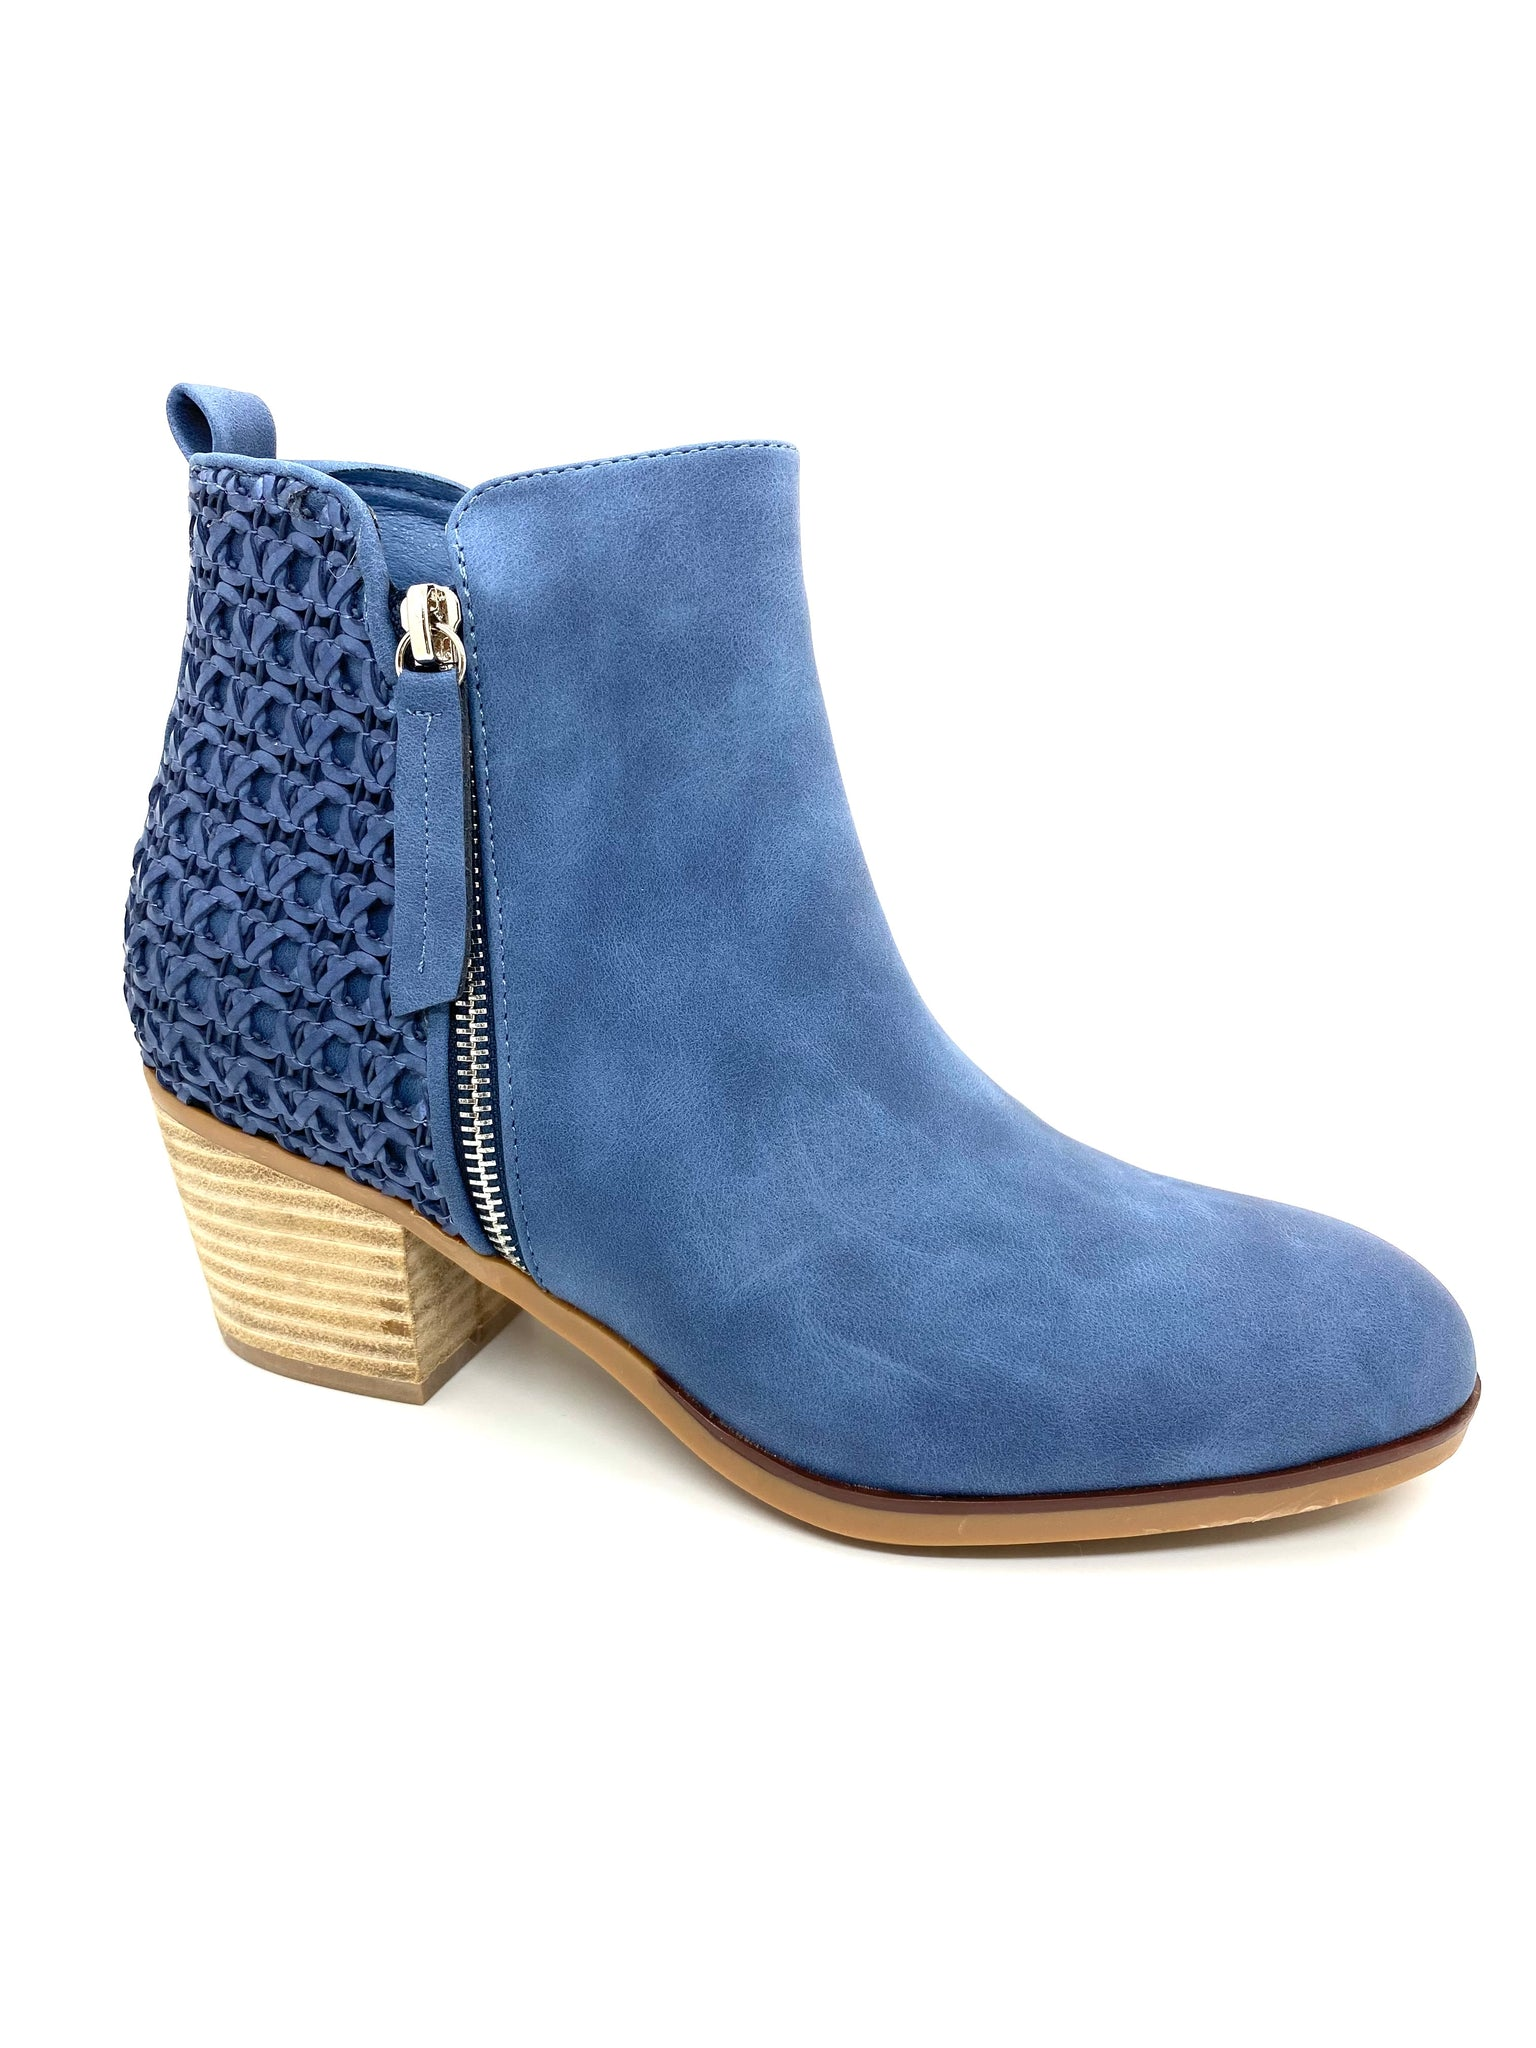 Xti Ladies Western Inspired Ankle Boot